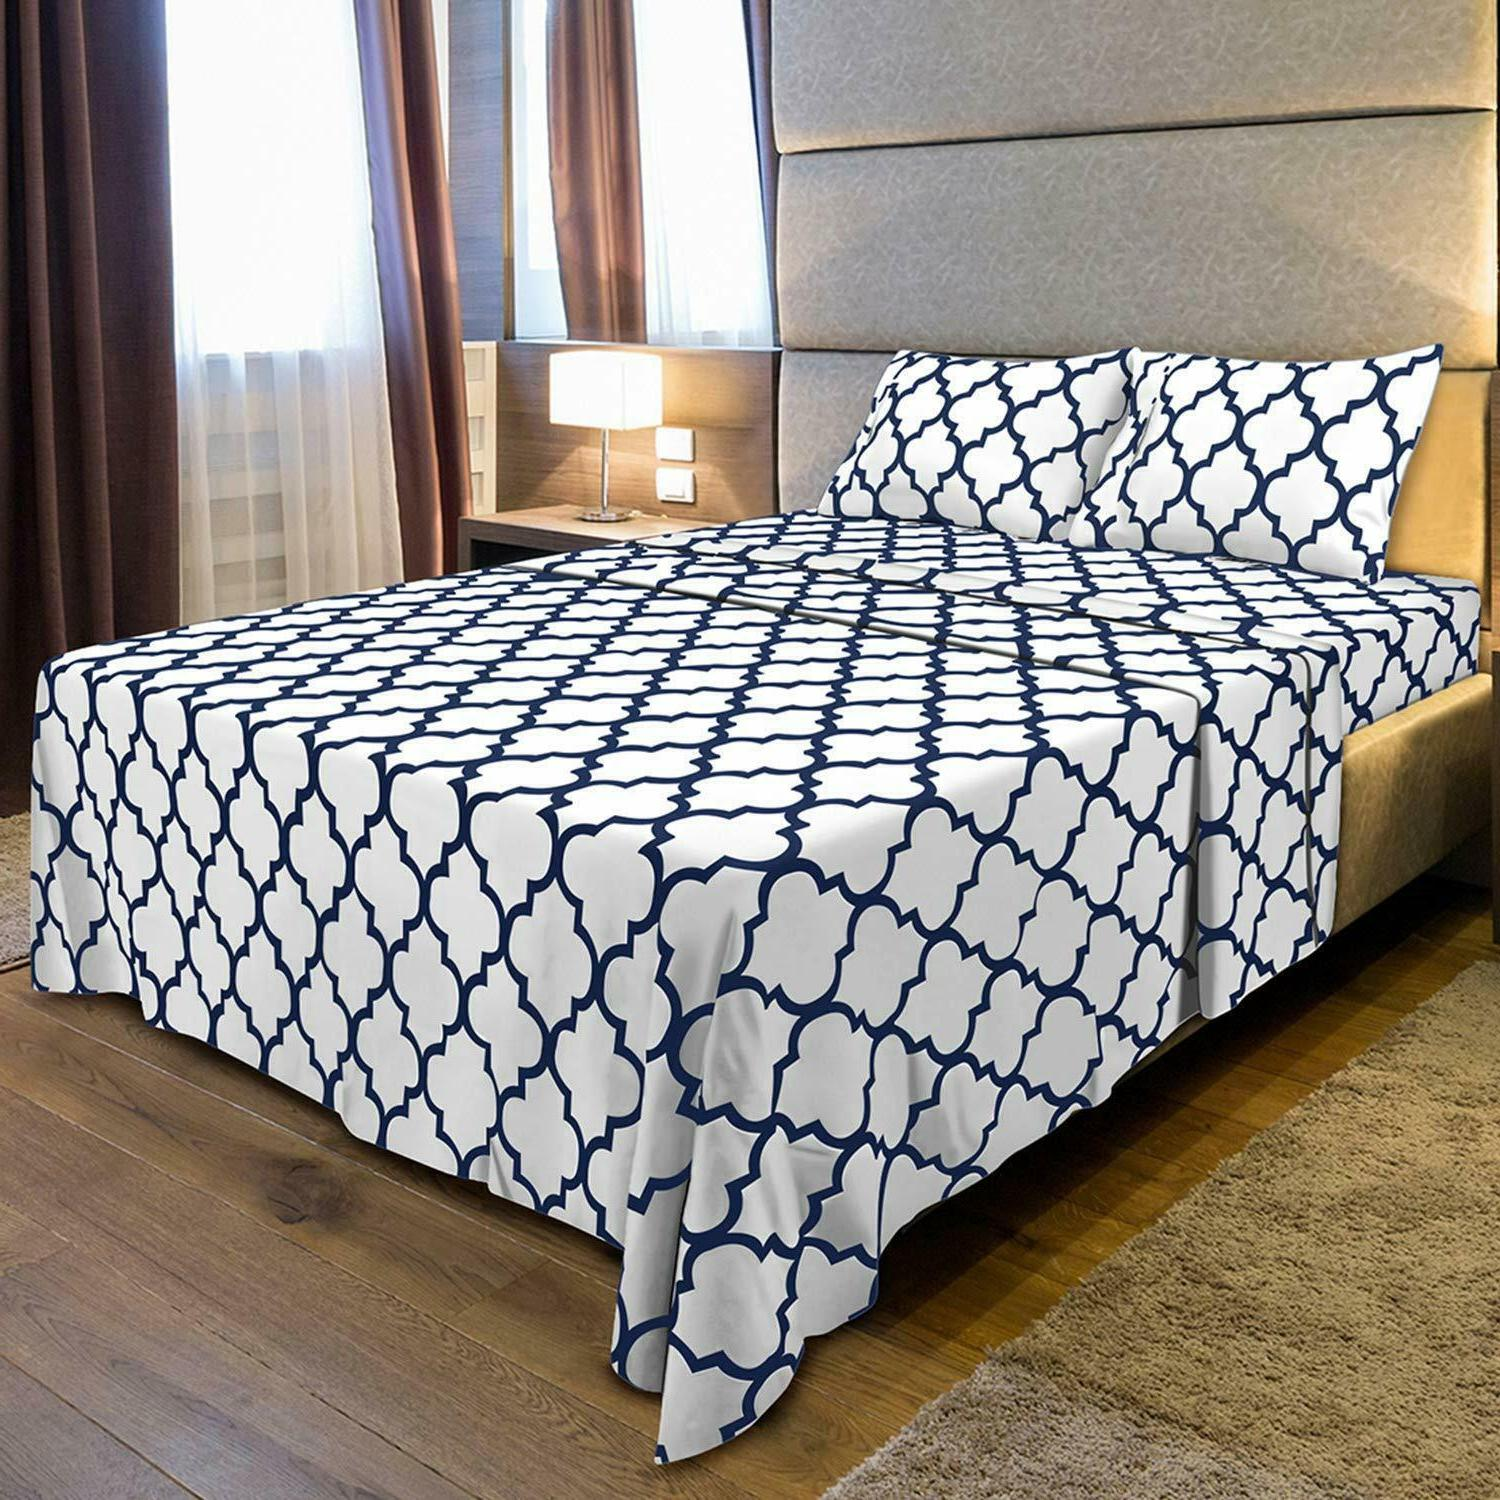 3Pc Set Fitted 1 Flat Pillowcase Bedding